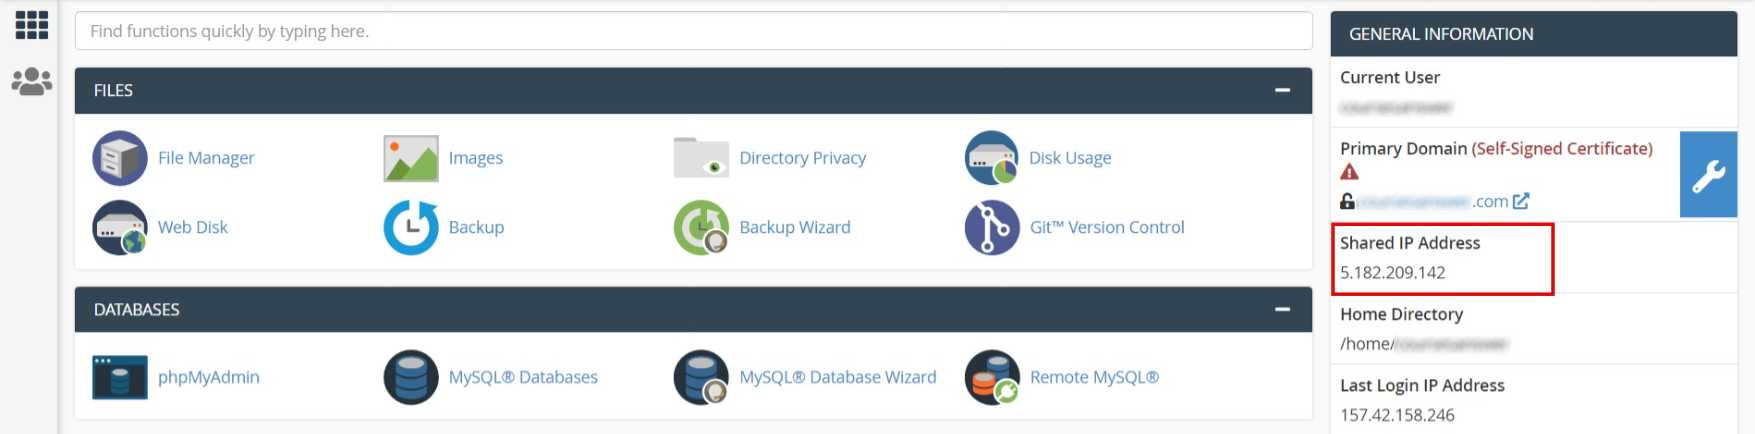 Log in to your new cPanel (On which you want to migrate) > Copy the Shared IP Address